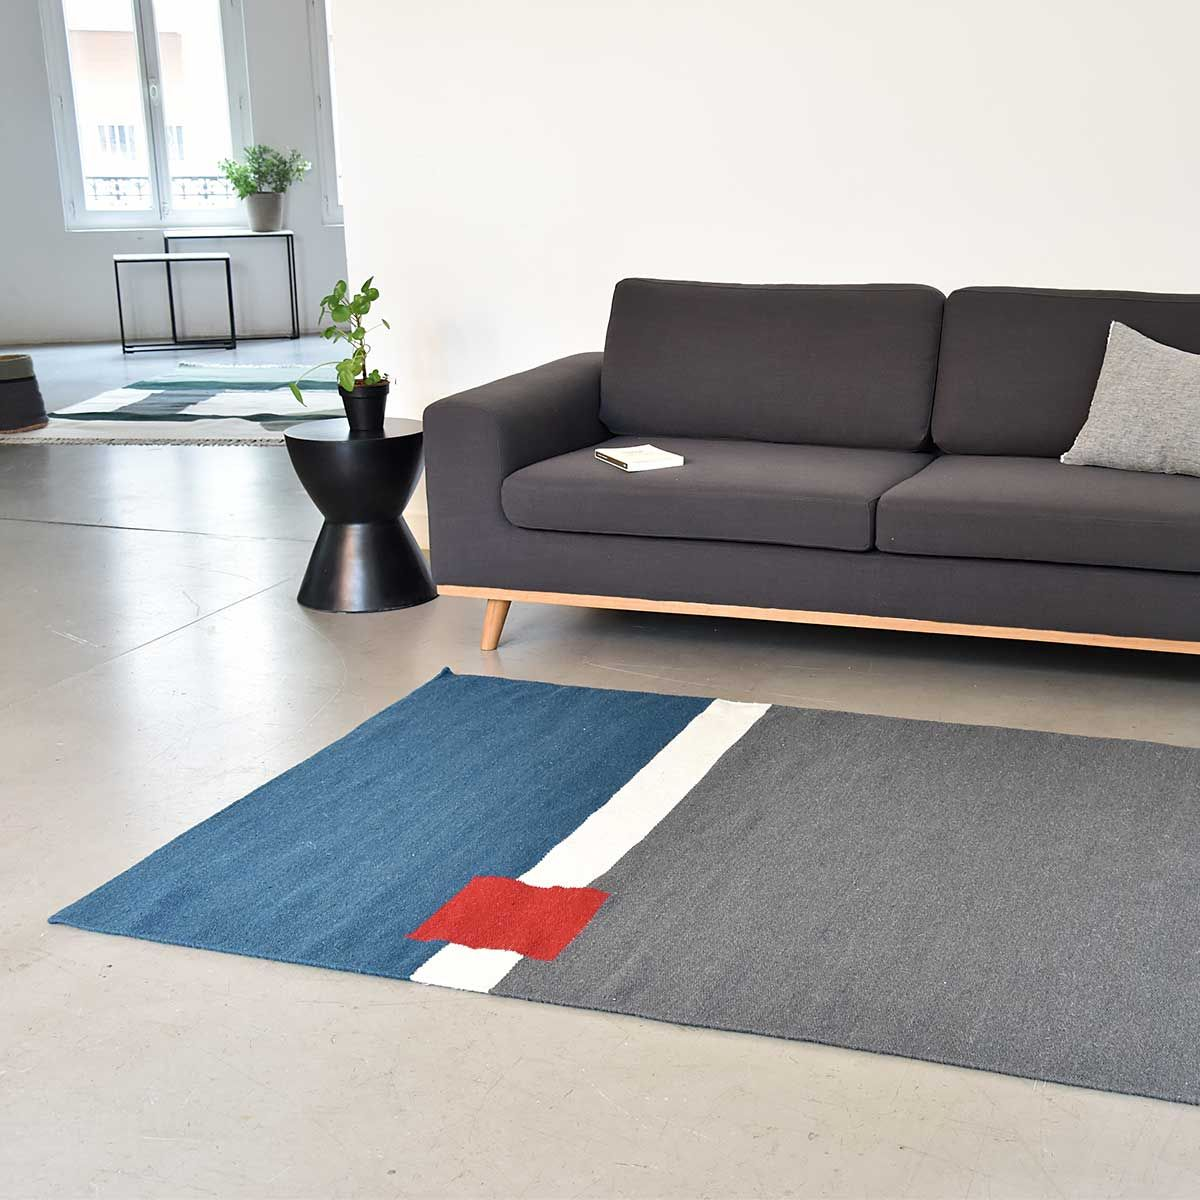 tapis rectangulaire en laine tiss main gris bleu paon et. Black Bedroom Furniture Sets. Home Design Ideas